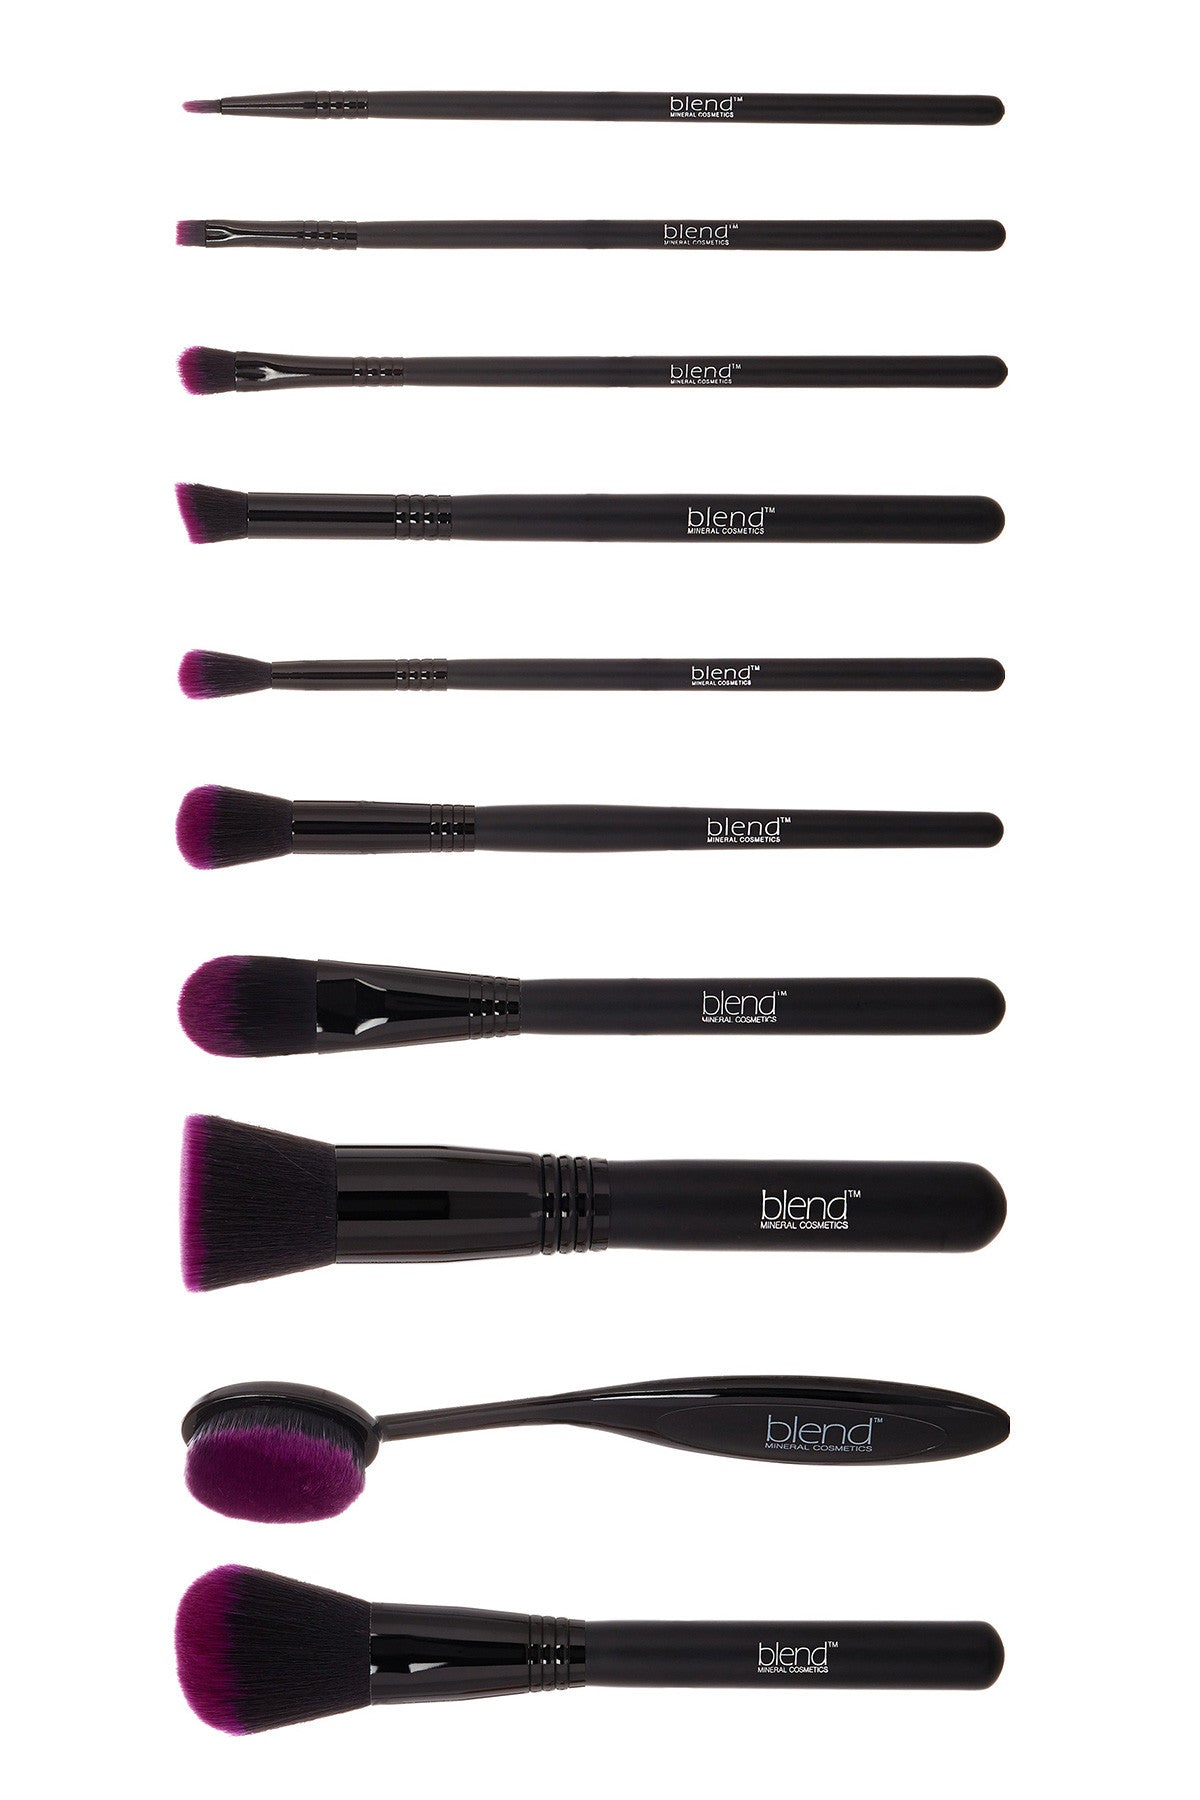 Super Professional Makeup Artist Complete 11-Piece Brush Kit - Purple